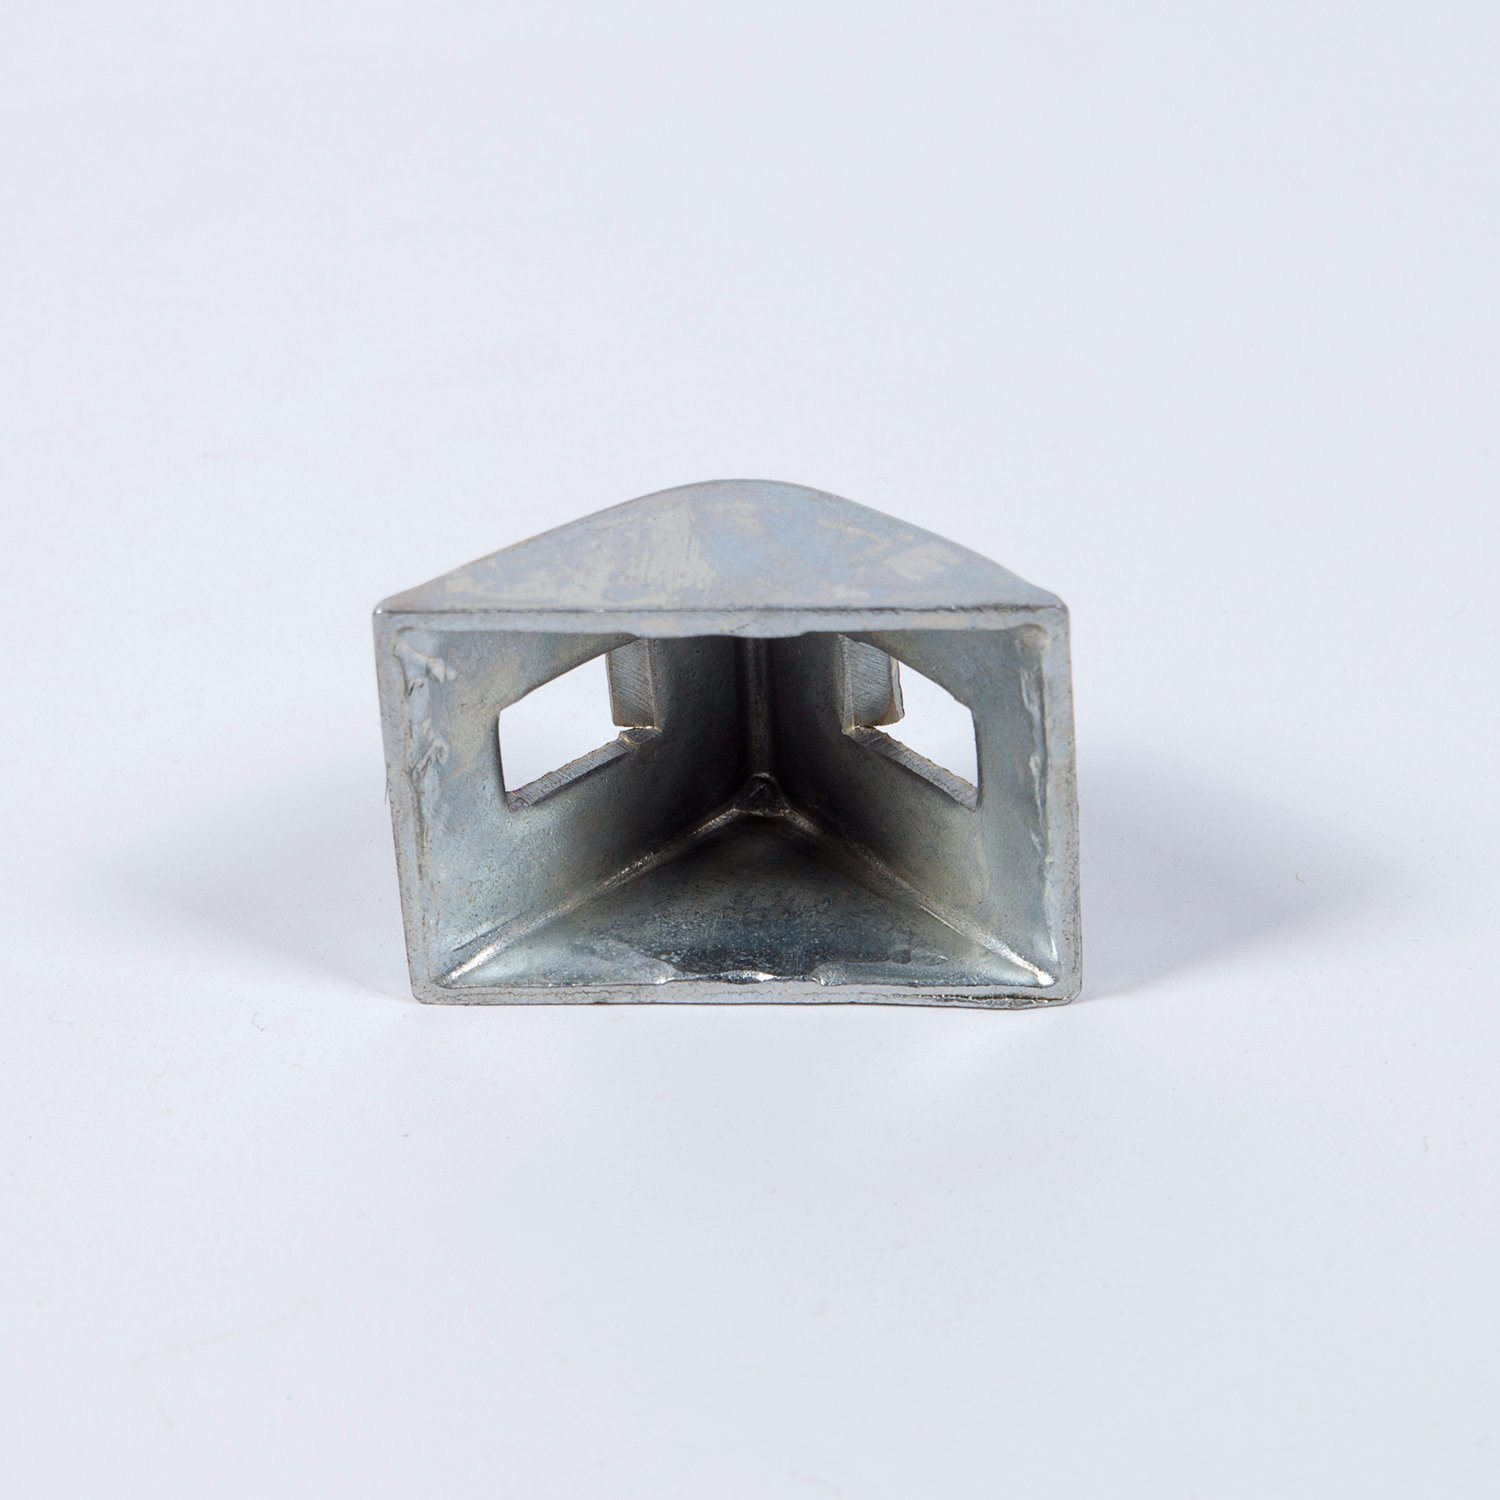 Joint Angle Inner Connector Die-Cast Aluminum (40-40)